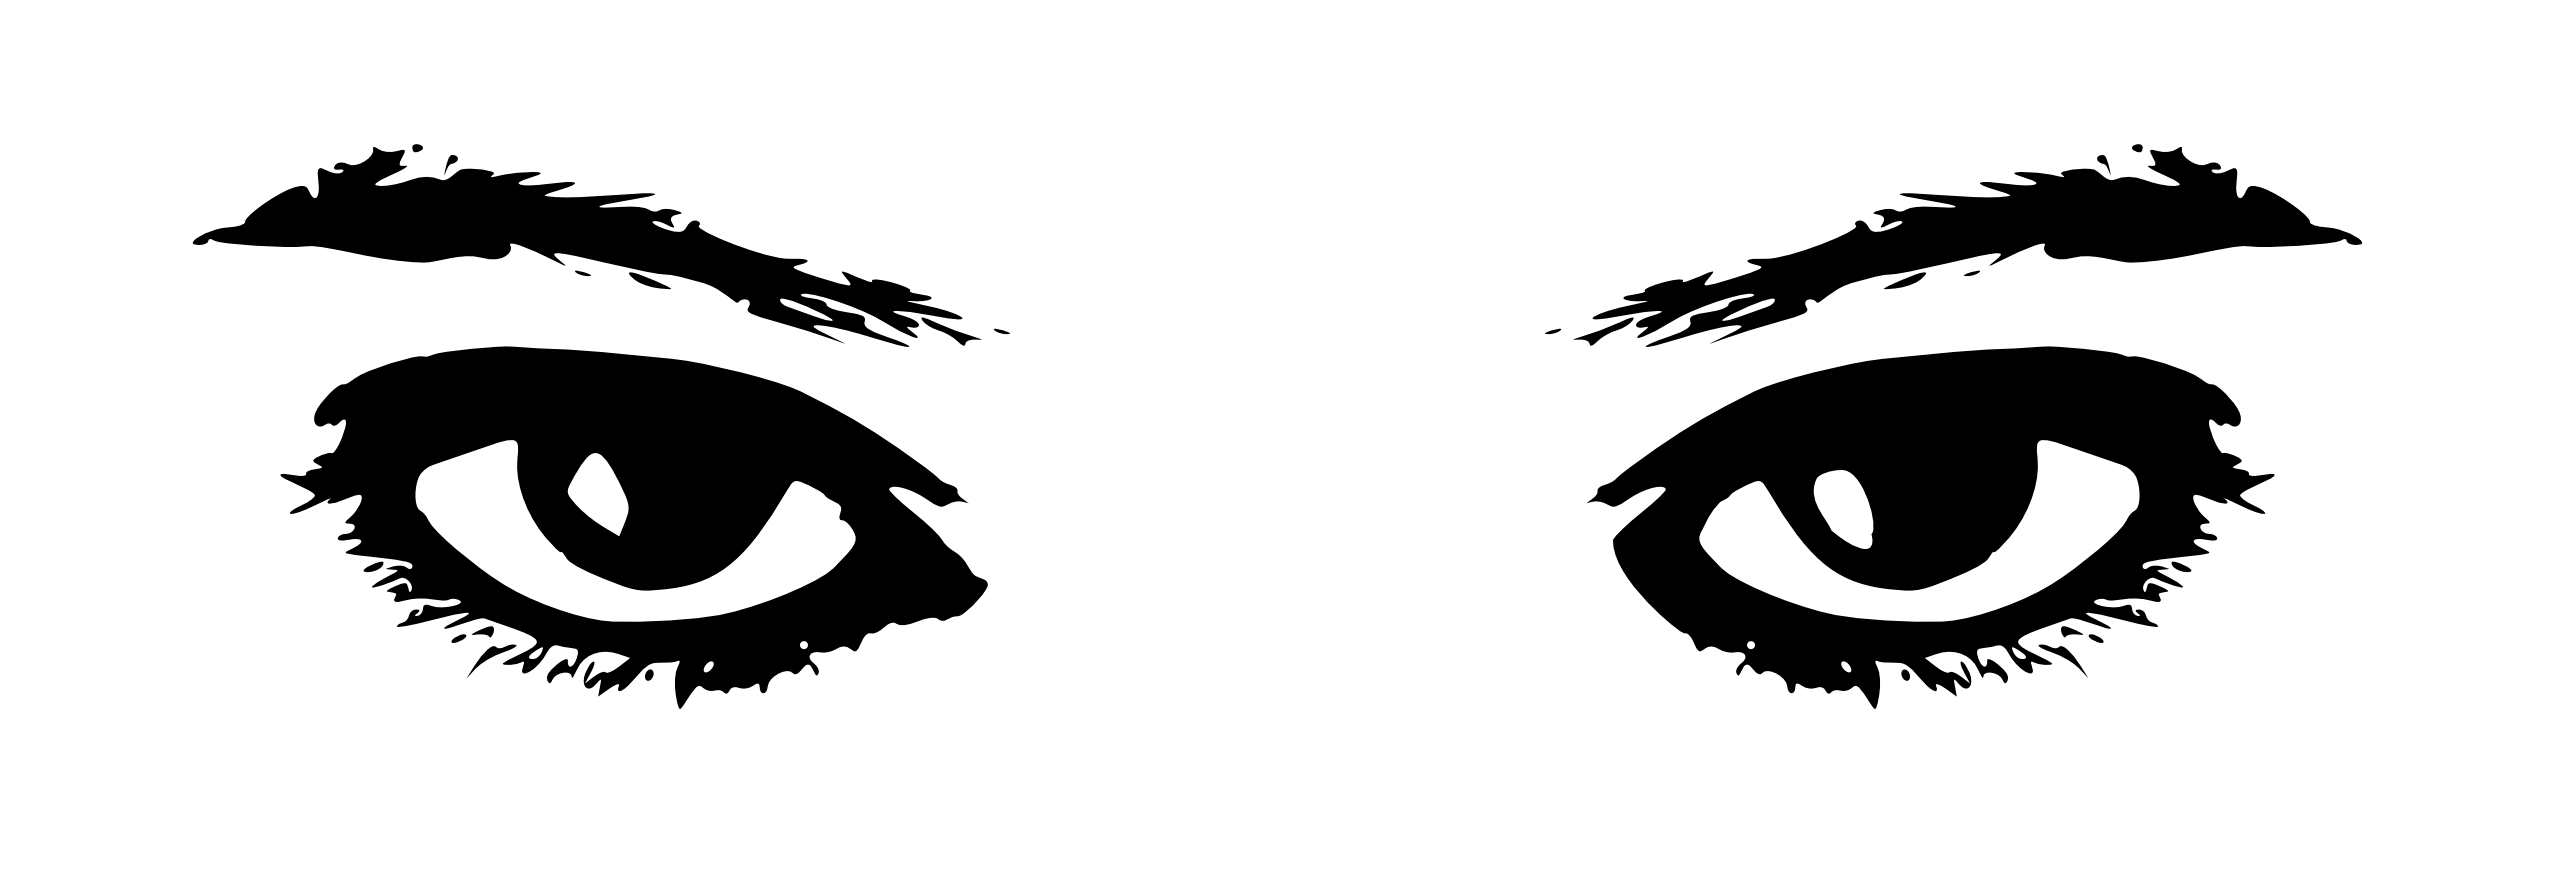 Hazel Eyes clipart transparent Clip of cartoon eye art